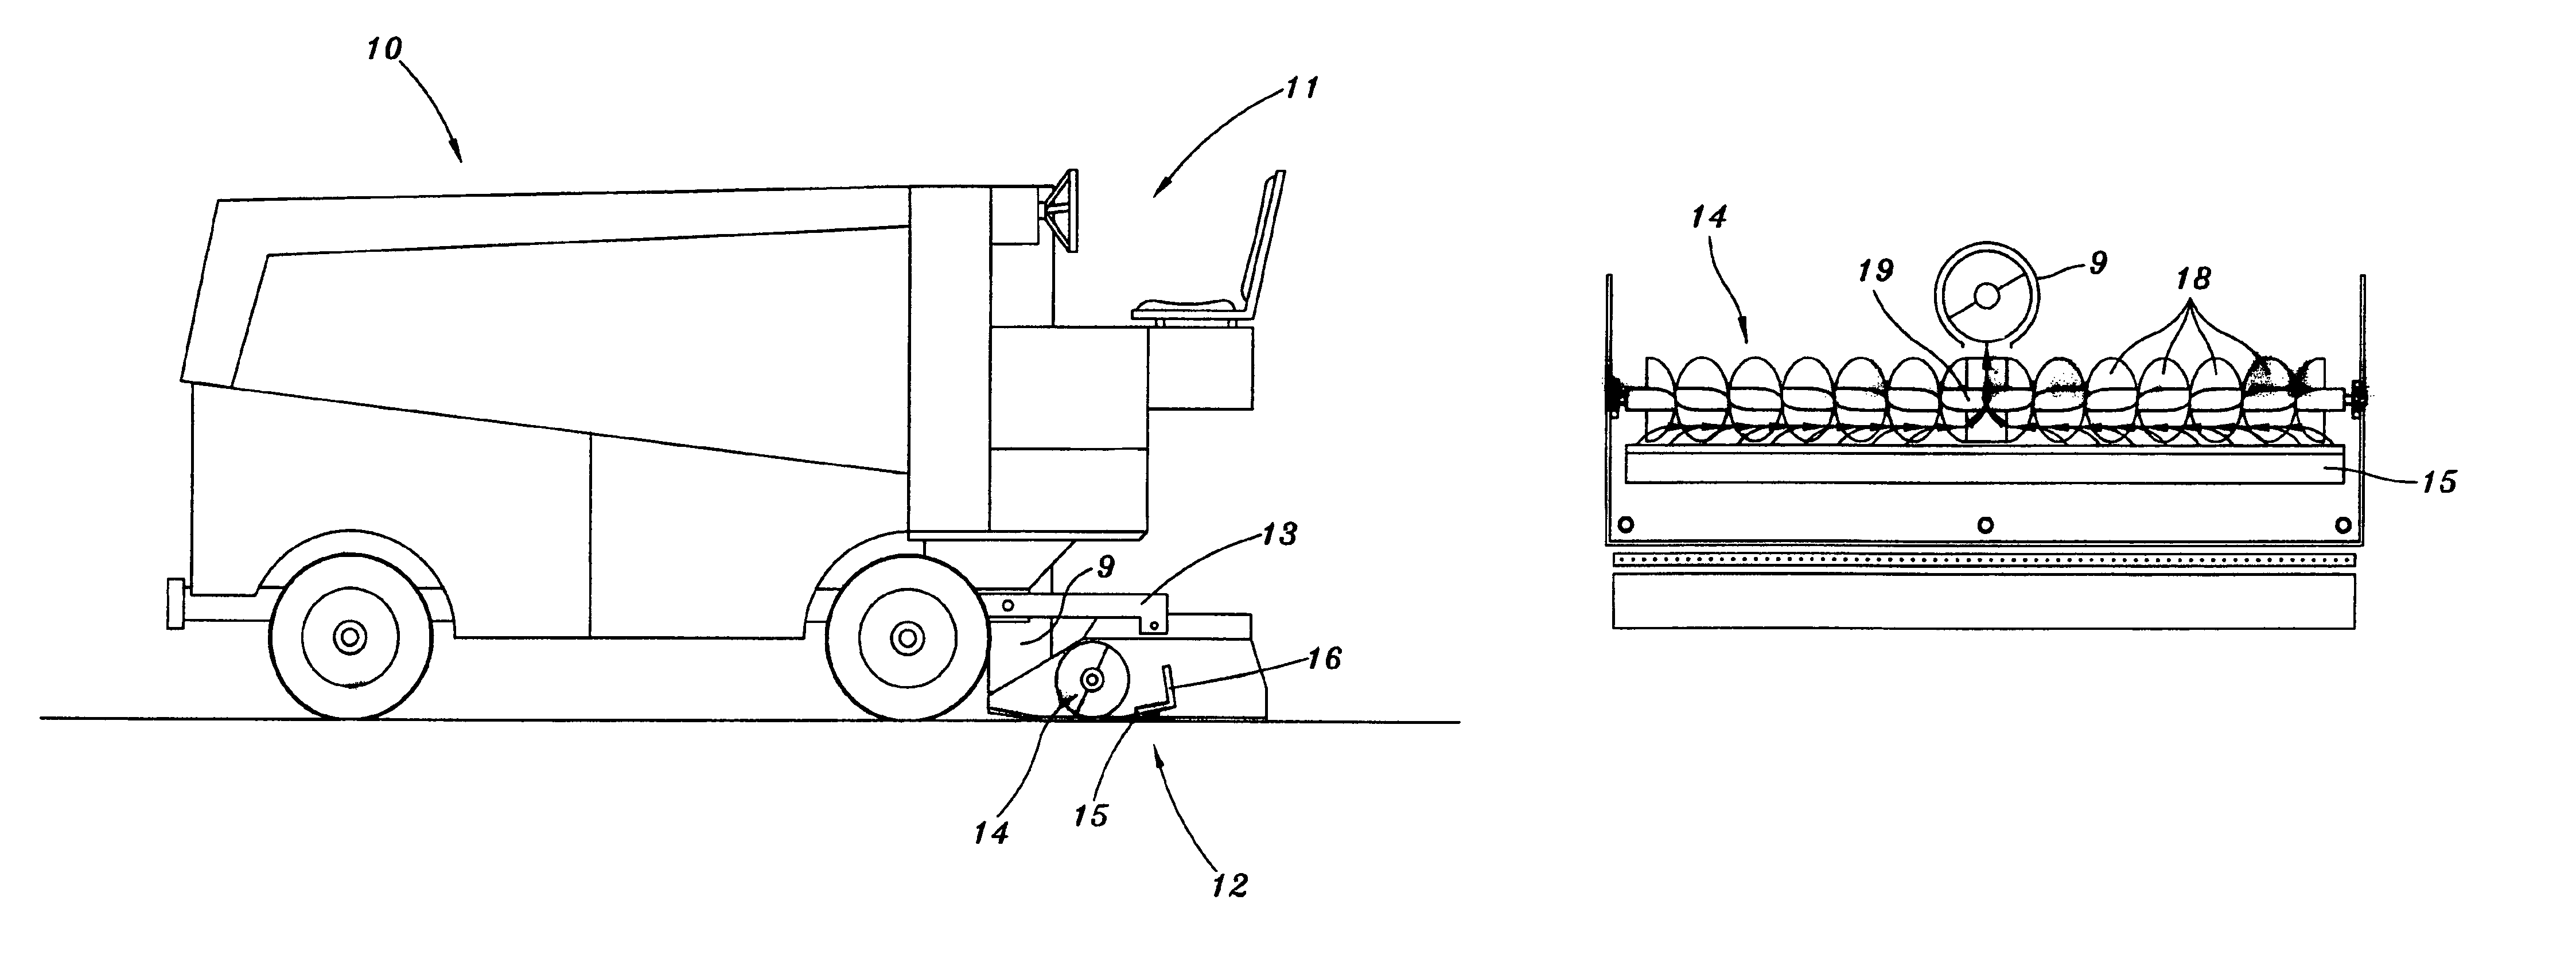 Coloring pages zamboni -  Patent Us7757415 Horizontal Ice Cuttings Conveyor For Ice Coloring Pages Zamboni Coloring Pages Printable